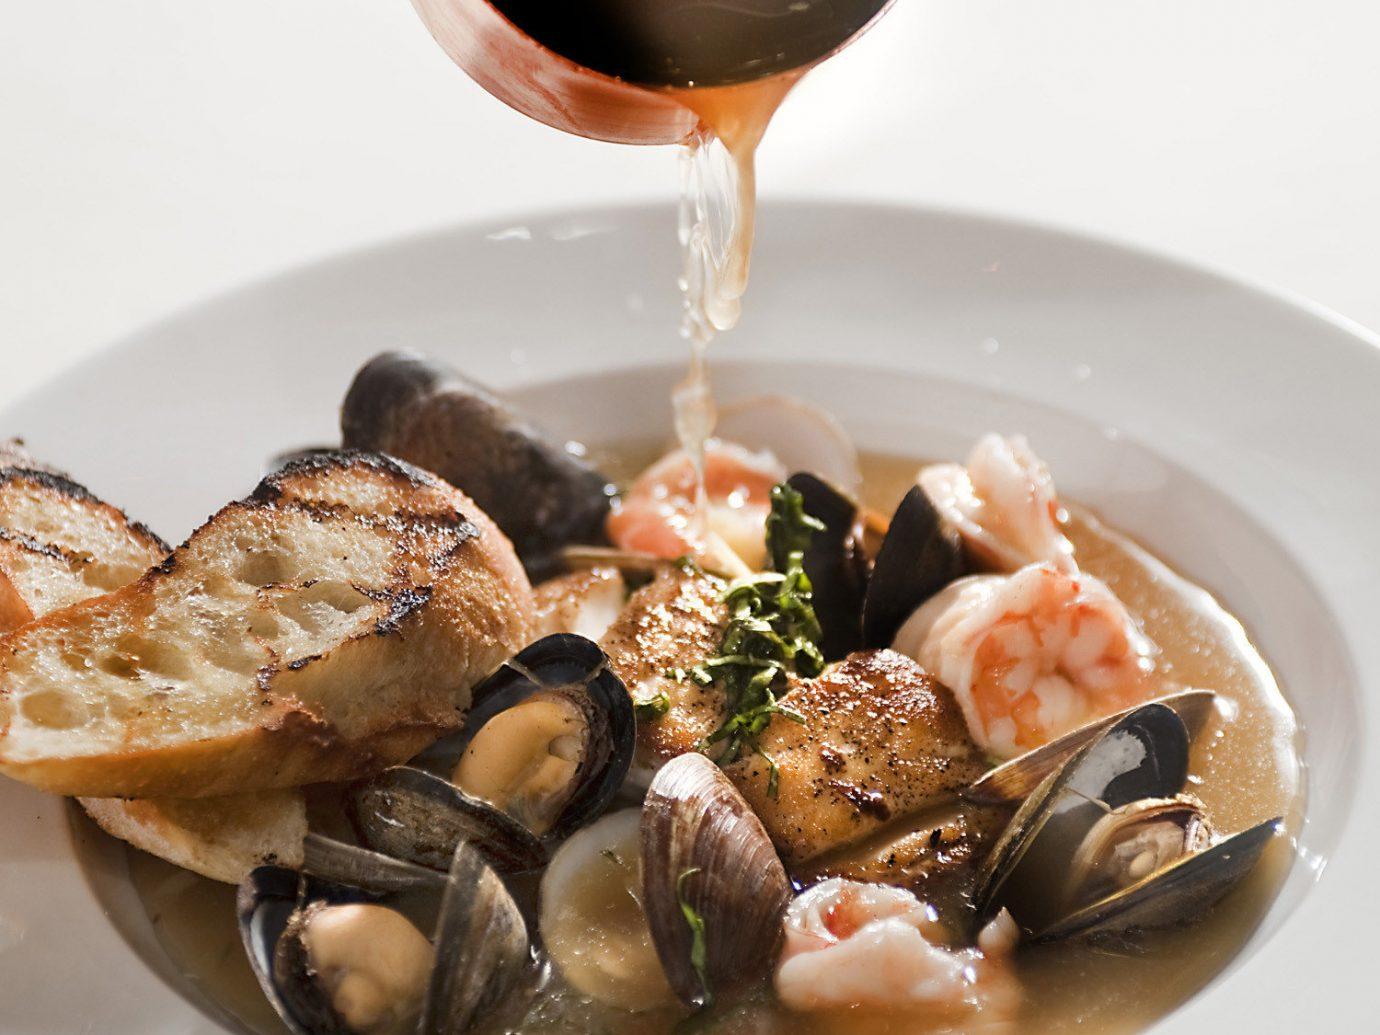 Food + Drink plate food table dish meal bouillabaisse mussel cuisine Seafood fish restaurant escargot clam clams oysters mussels and scallops breakfast produce meat piece de resistance